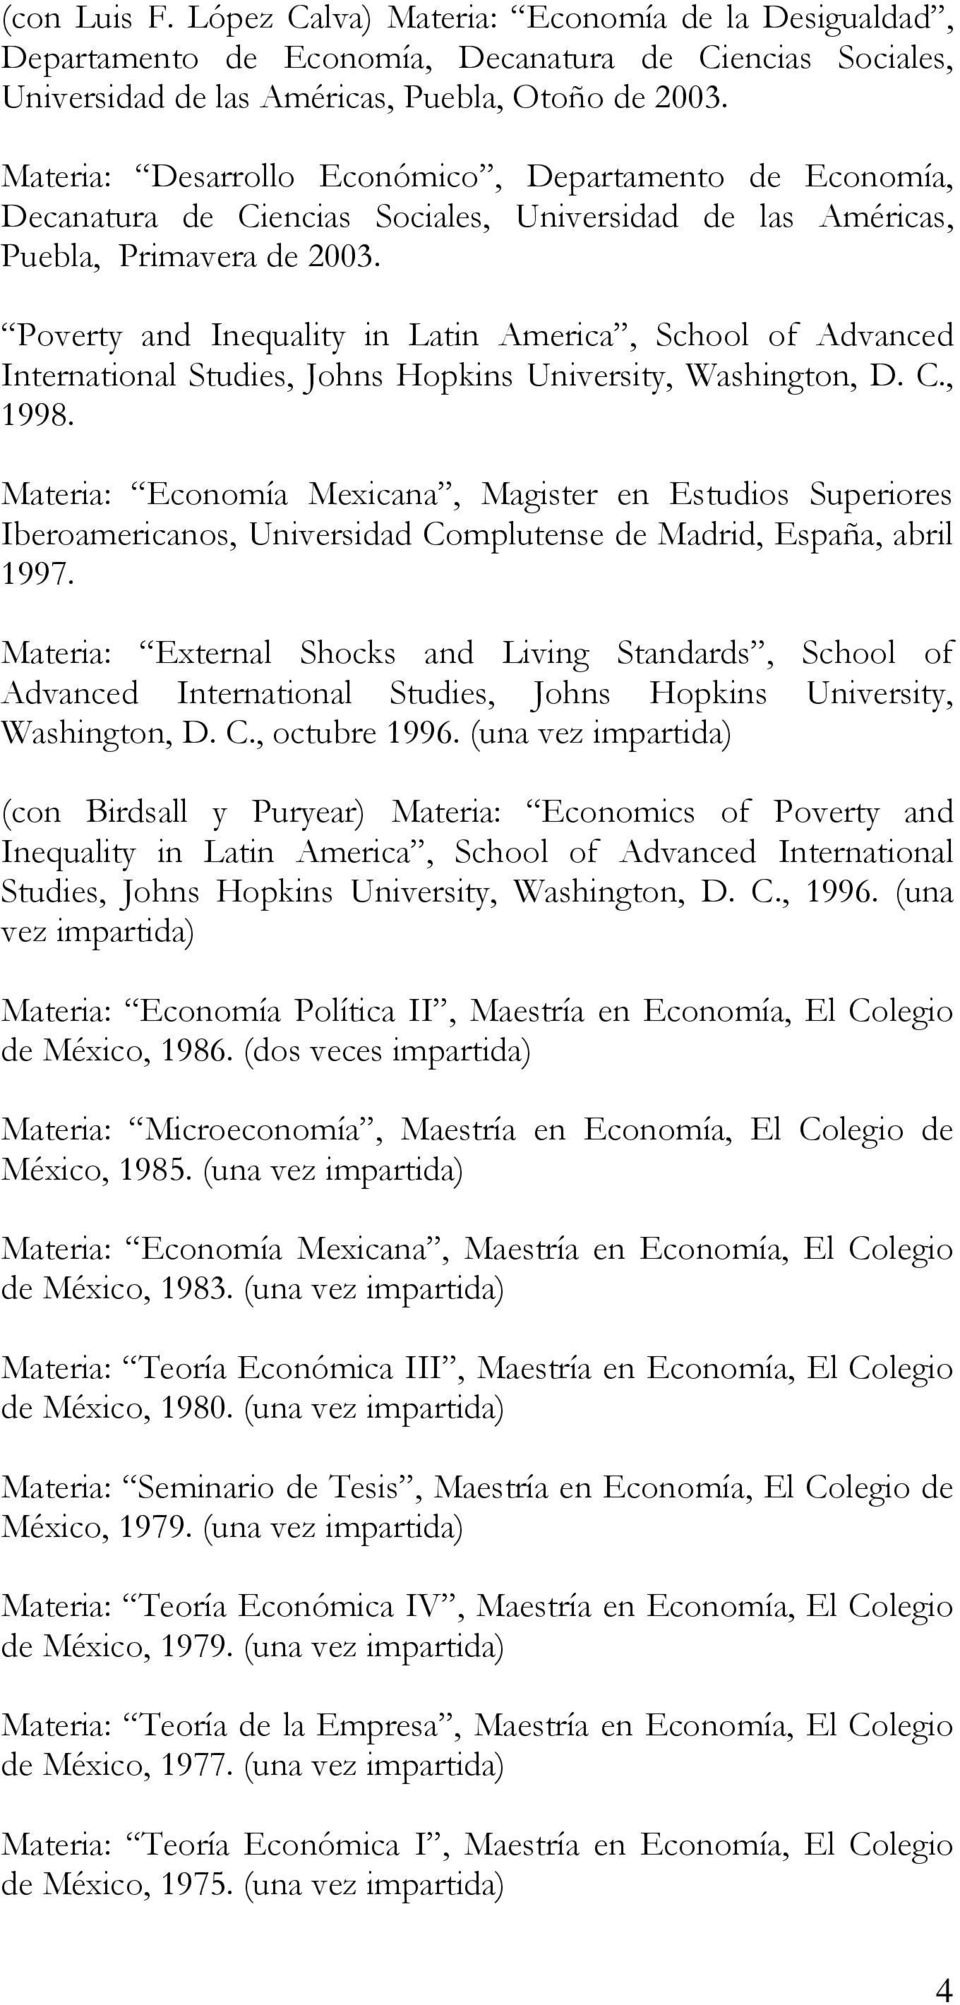 Poverty and Inequality in Latin America, School of Advanced International Studies, Johns Hopkins University, Washington, D. C., 1998.